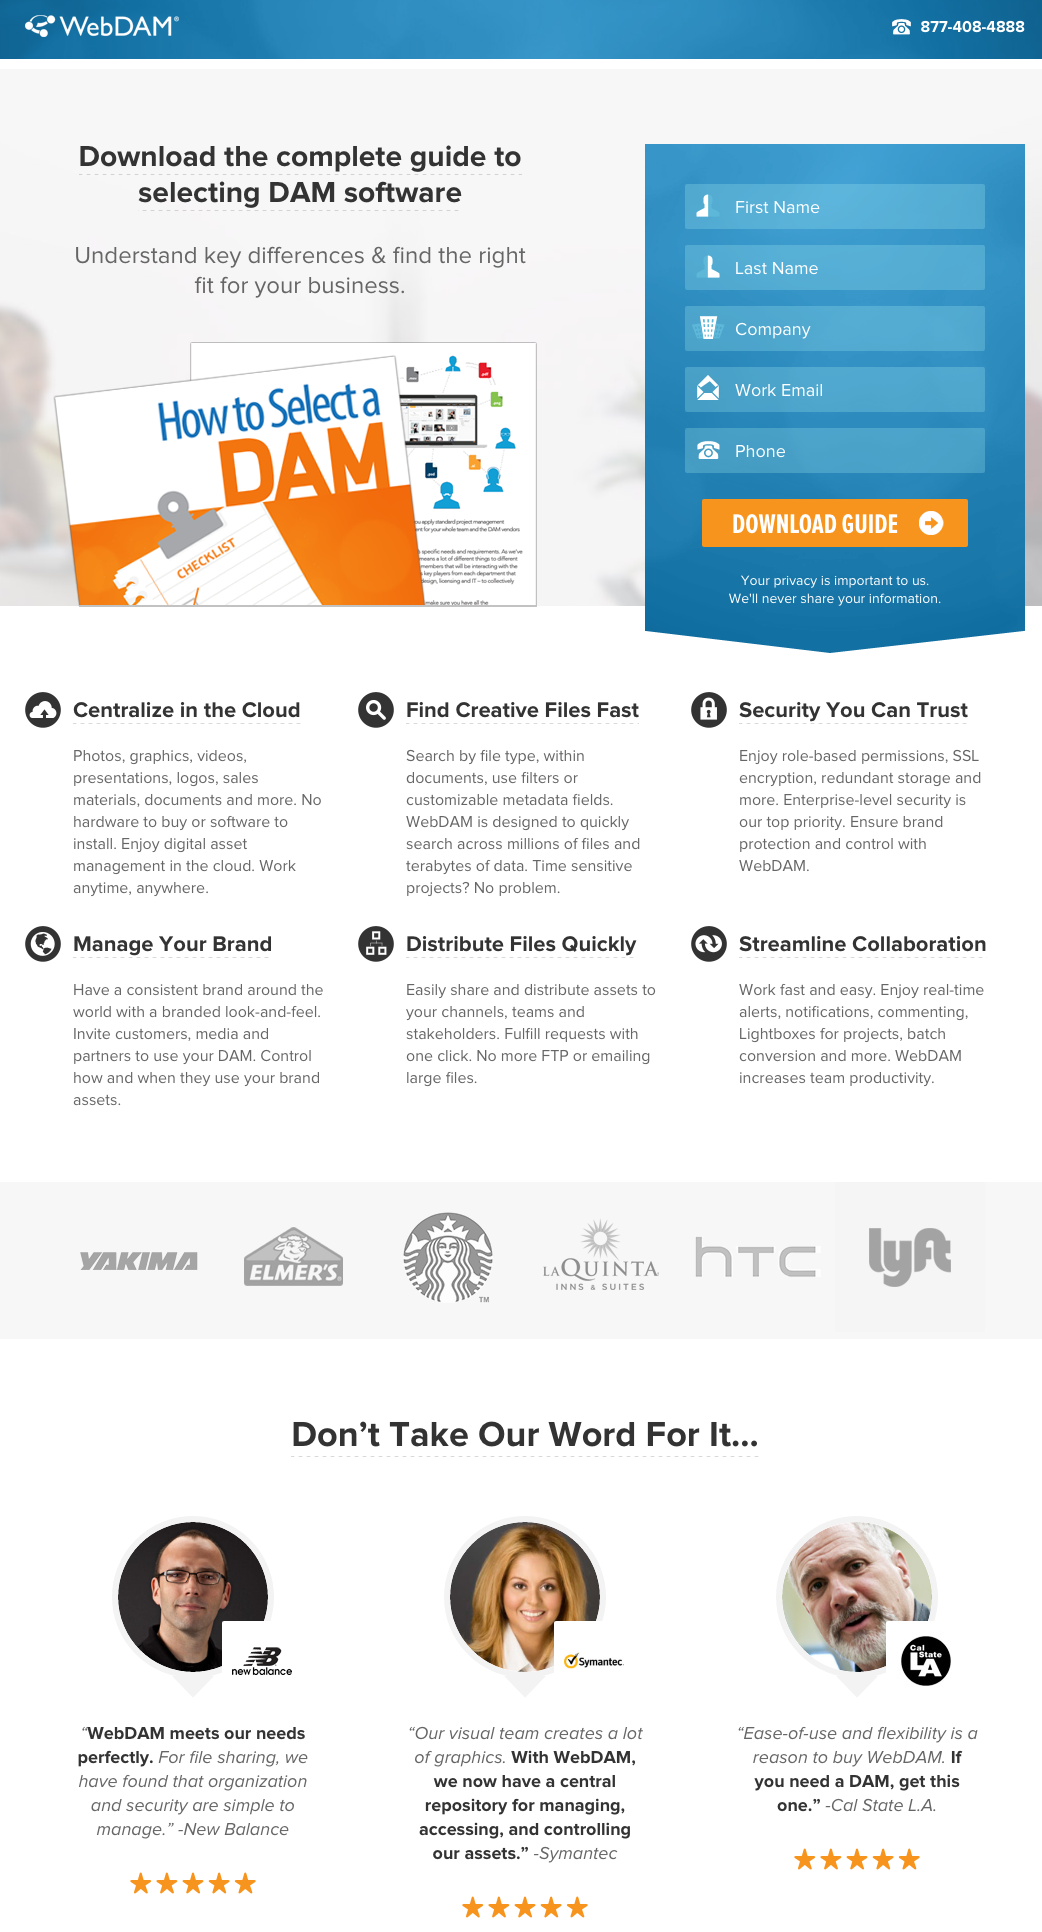 Landing Page Credibility Example